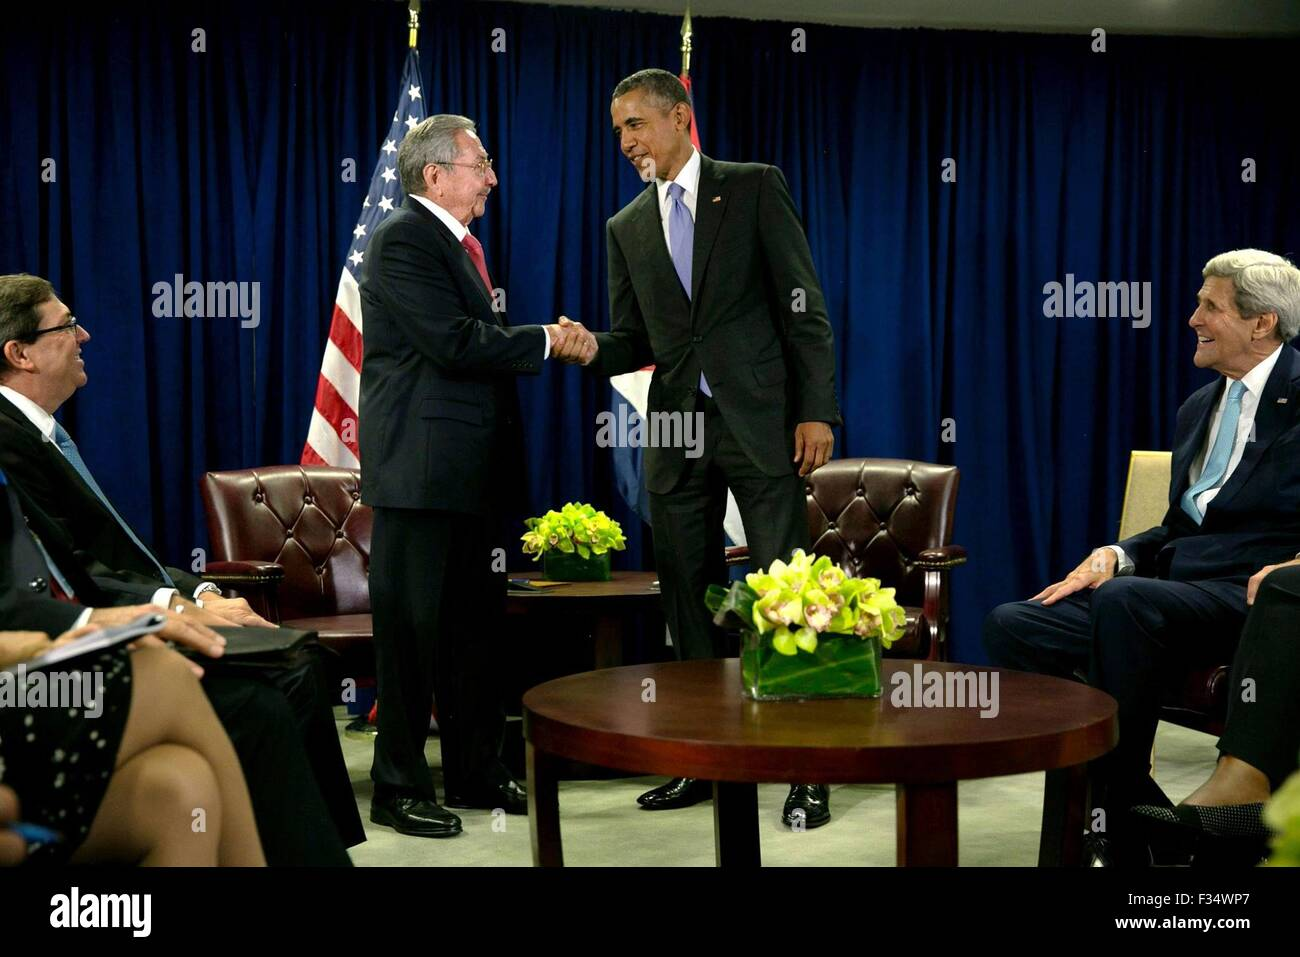 New York, New York, USA. 29th Sep, 2015. U.S. President Barack Obama greets Cuban President Raul Castro before the start of their bilateral meeting at the United Nations September 29, 2015 in New York, N.Y. Stock Photo